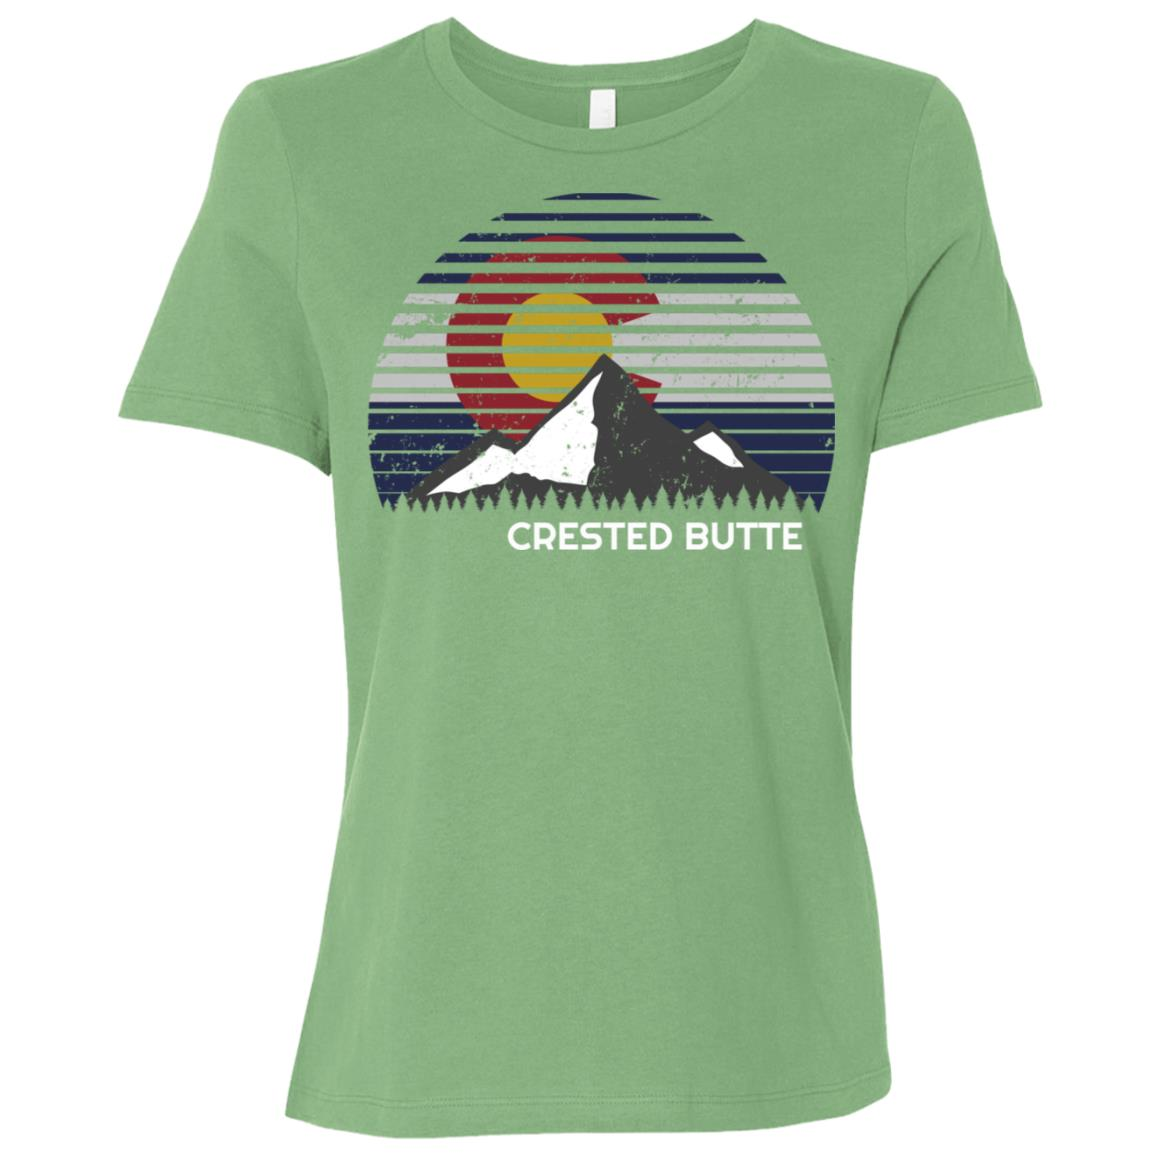 Crested Butte, Colorado x Co Flag Mtn Top Women Short Sleeve T-Shirt